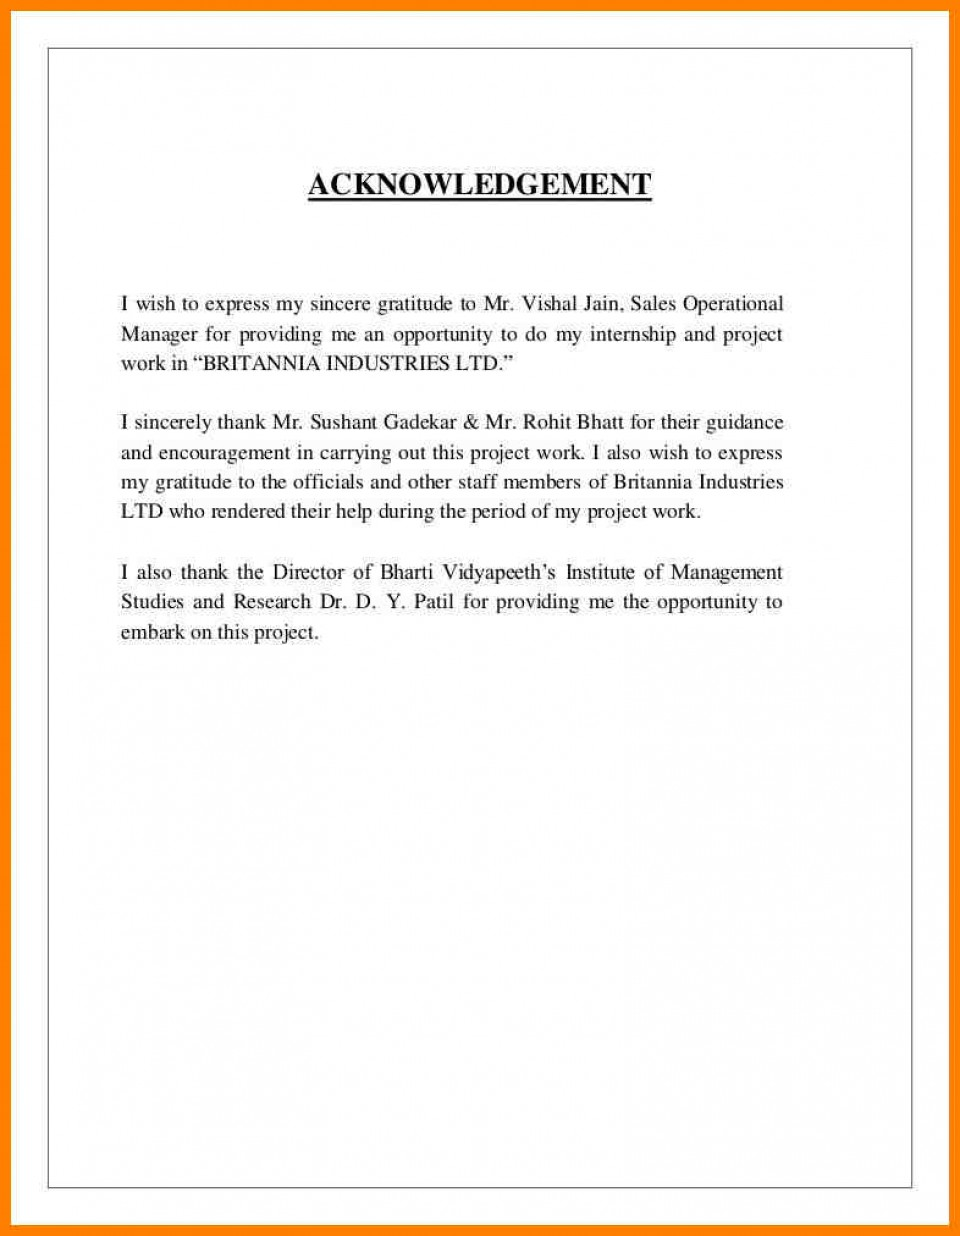 027 Sample Acknowledgement Page For Research Papers On Free Term Paper Essays Apa Short Essay Format Staggering Topic Proposal Childhood Obesity Writing 960